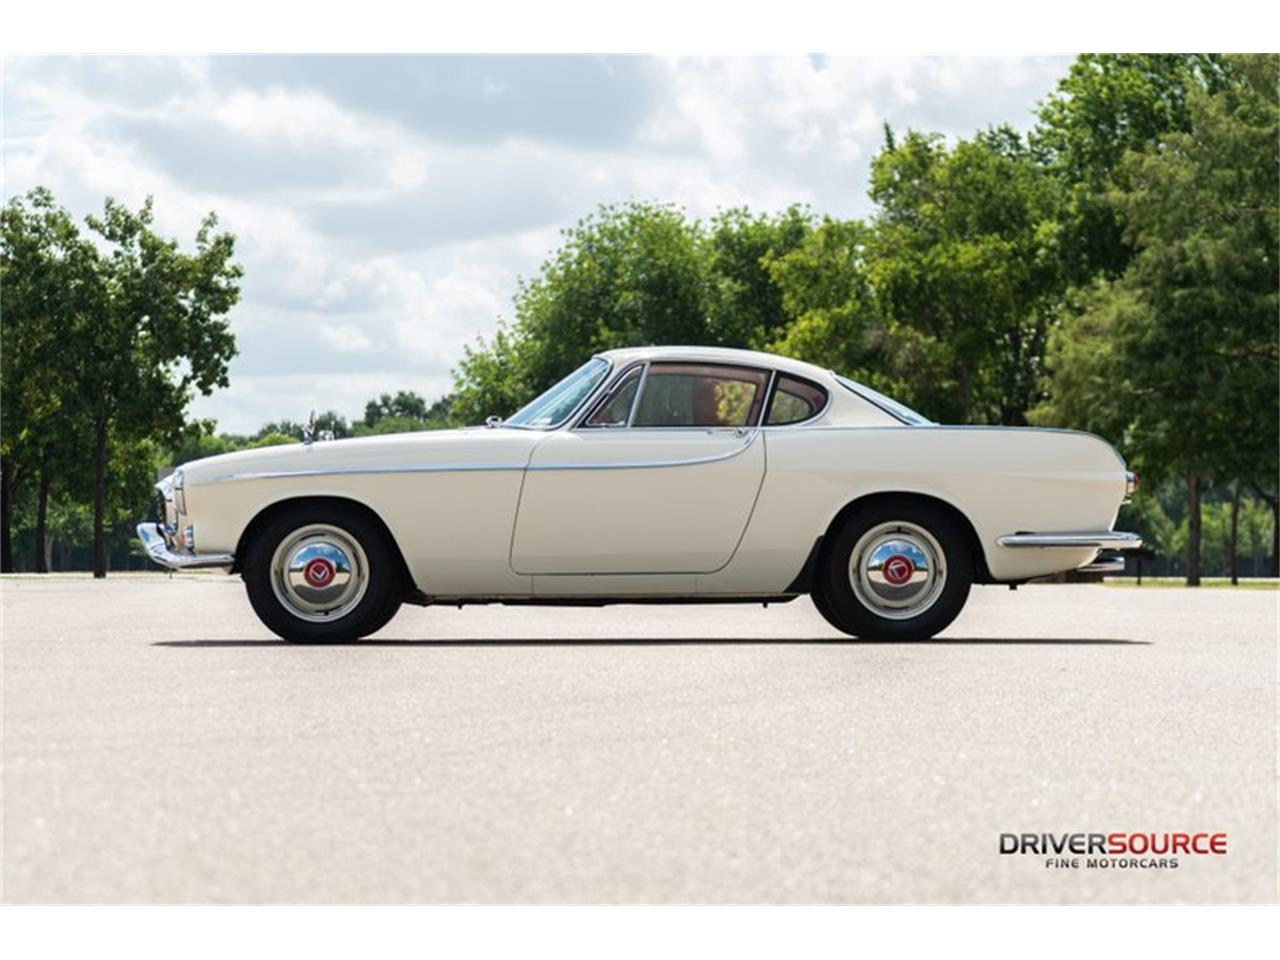 Large Picture of 1964 Volvo P1800E Offered by Driversource - NNM3